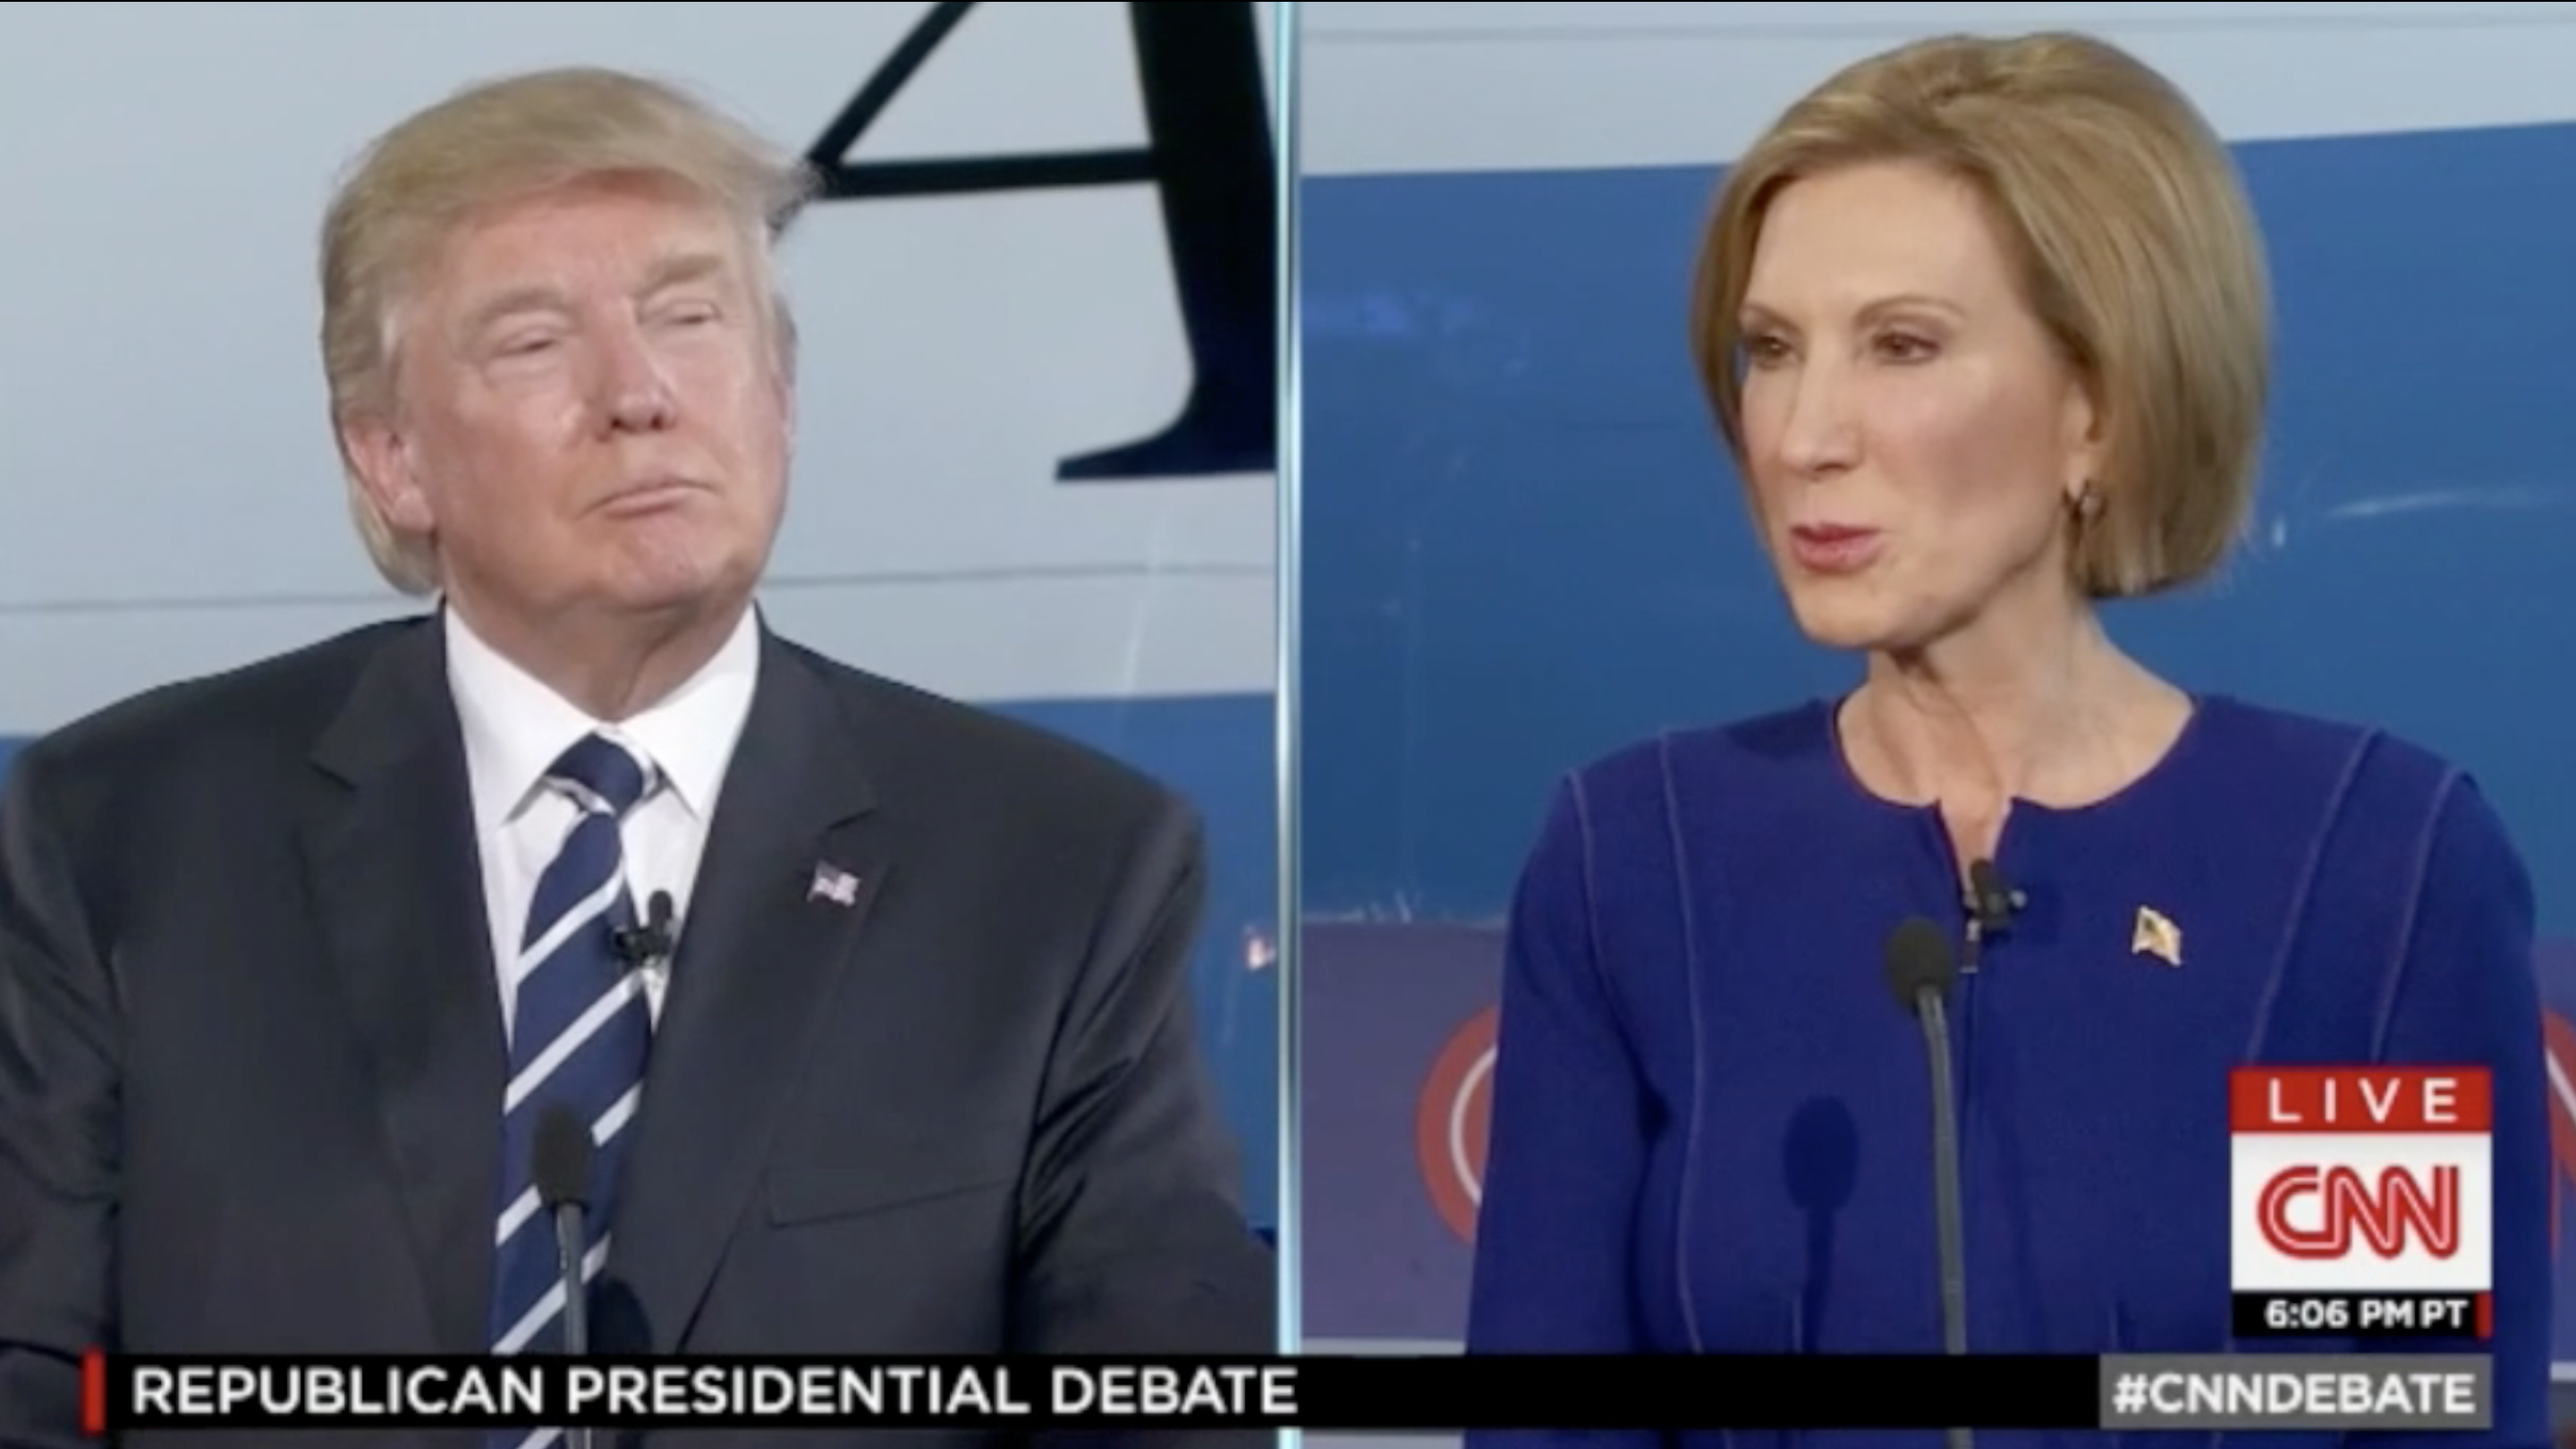 Carly Fiorina and the underappreciated art of listening